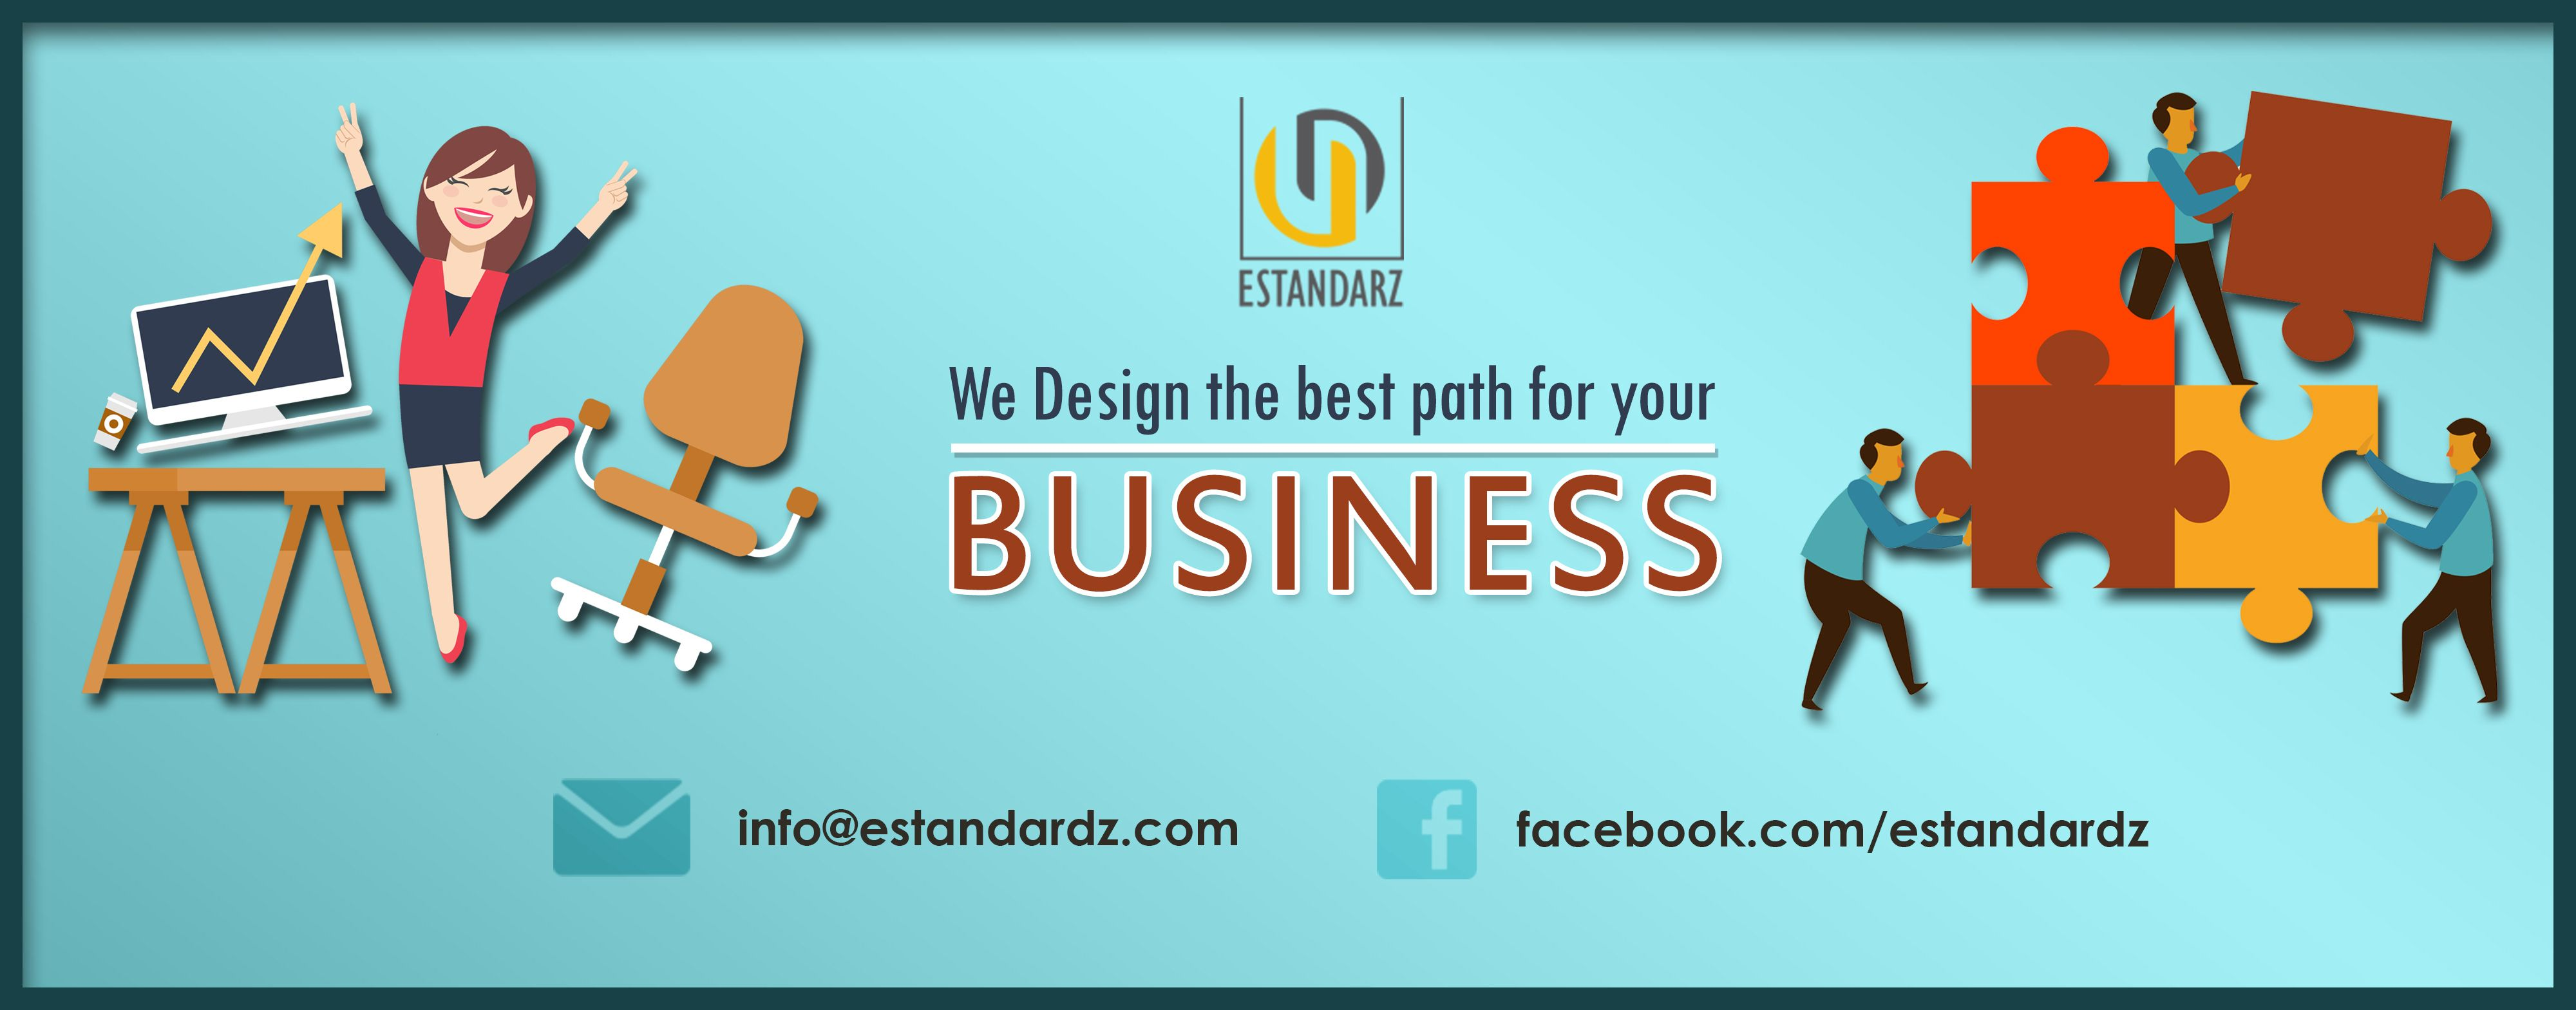 Estandardz Is A 360 Degree Solution Provider For The Hospitality